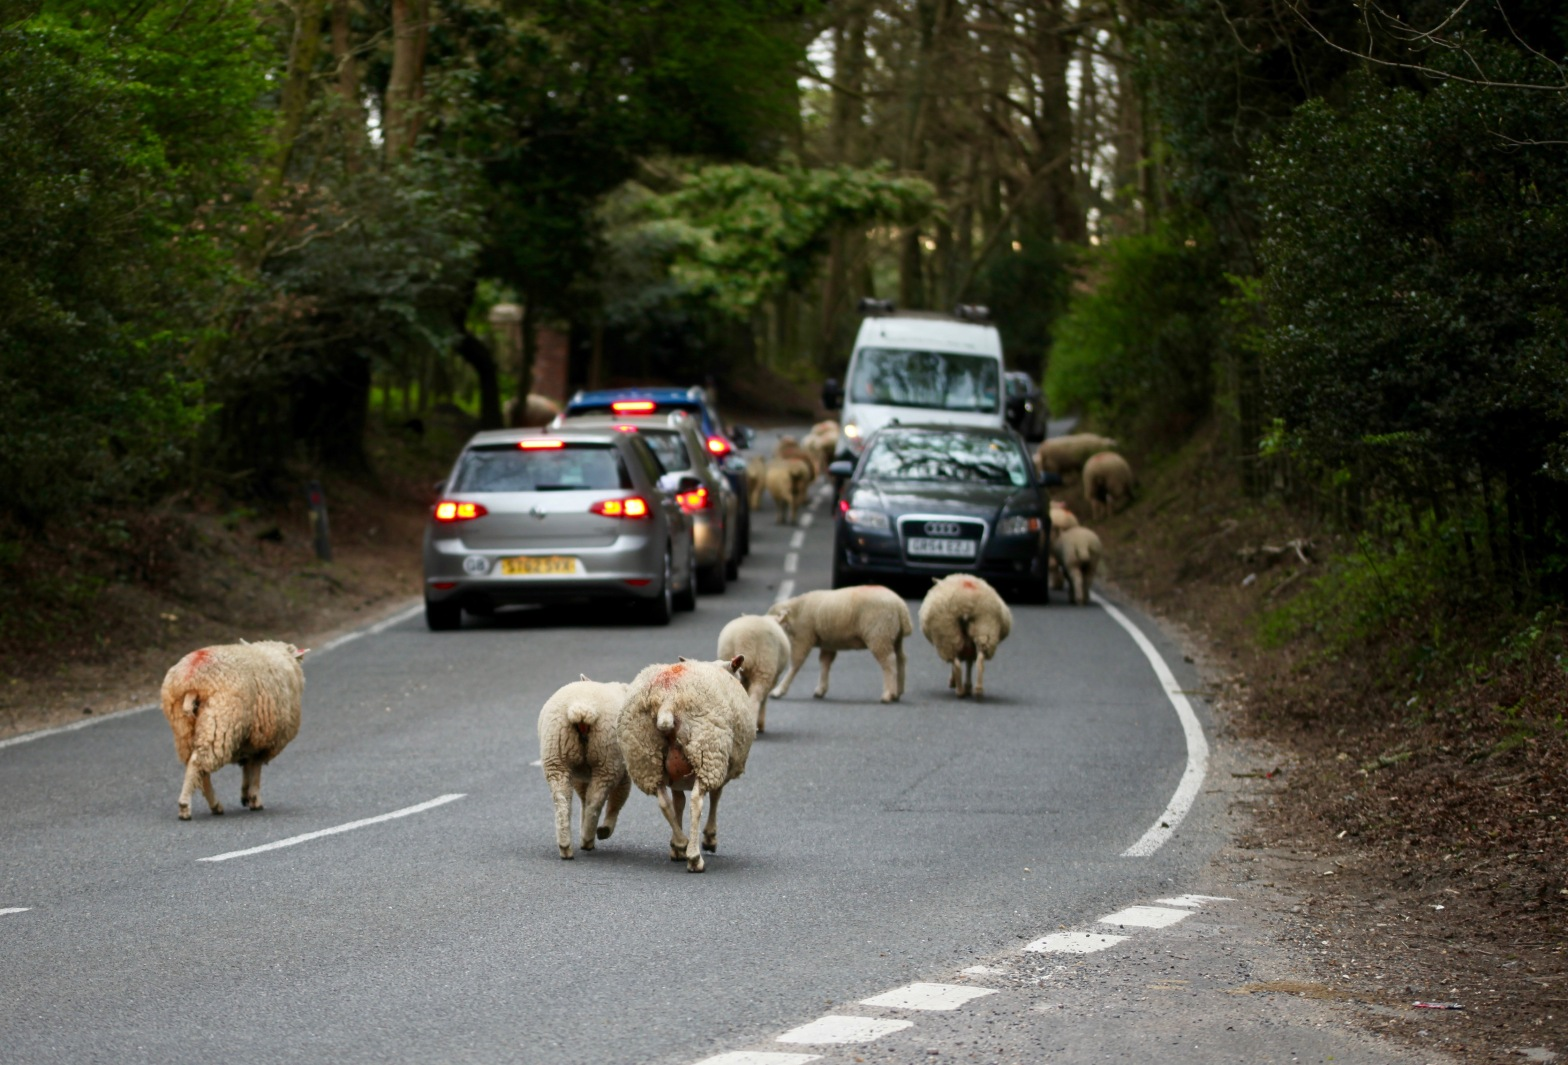 Sheep on road 6